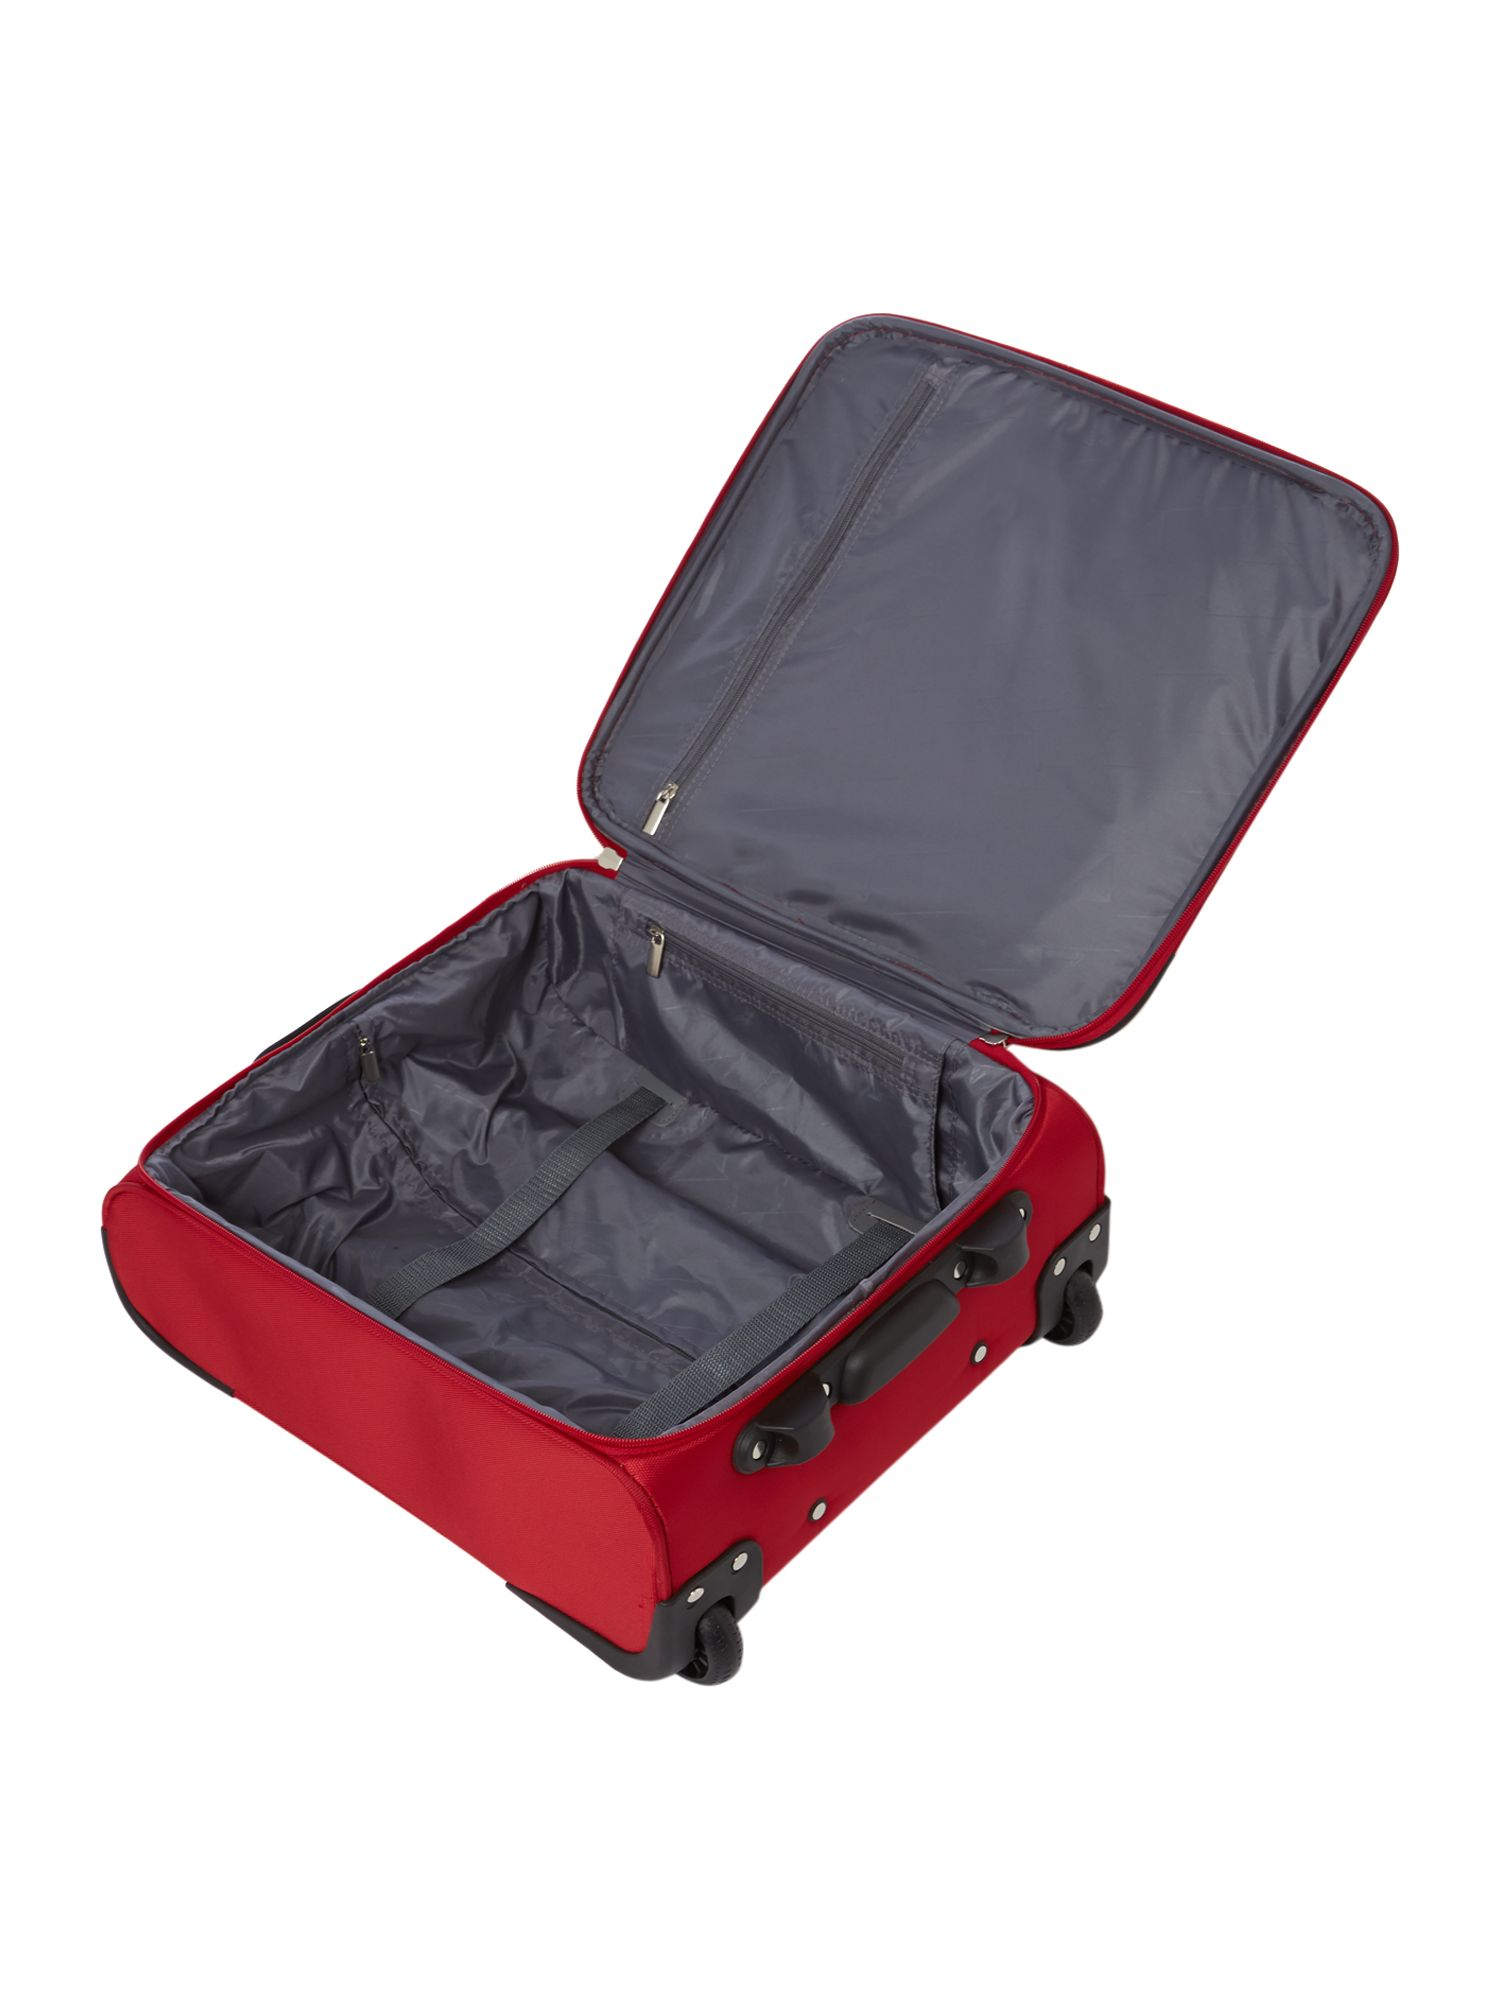 All airline red 2 wheel cabin case